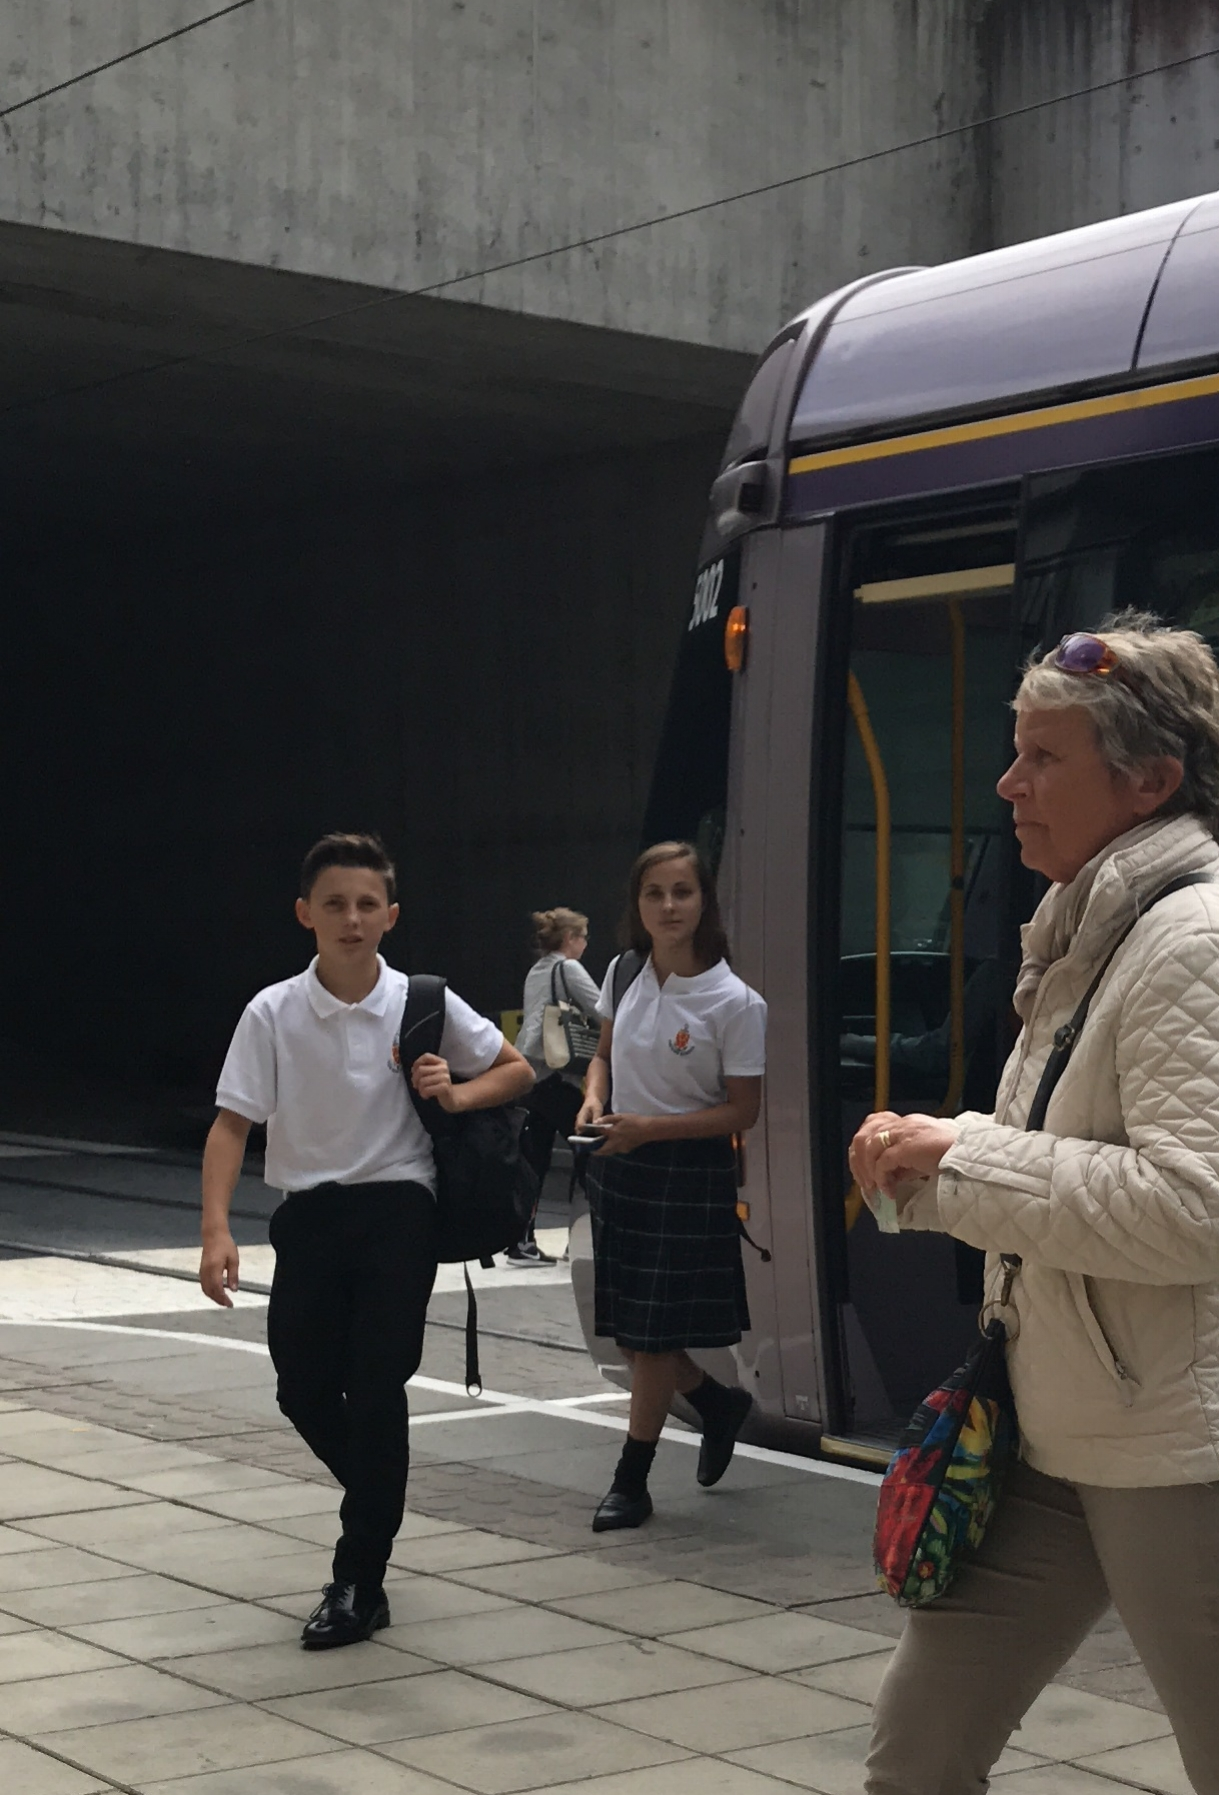 So yes, I was that Mom who waited for them to come off the LUAS on the 1st day of school